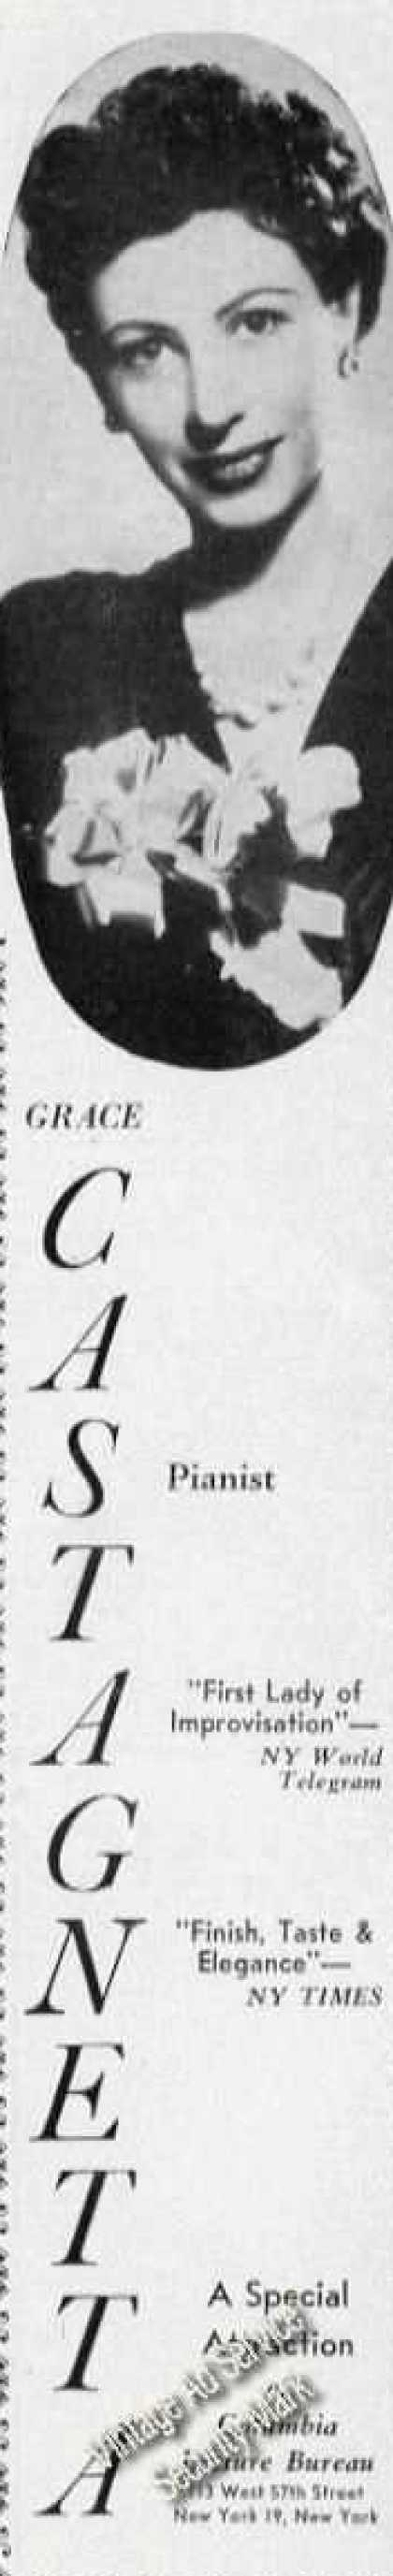 Grace Castagnetta Photo Piano Rare (1950)